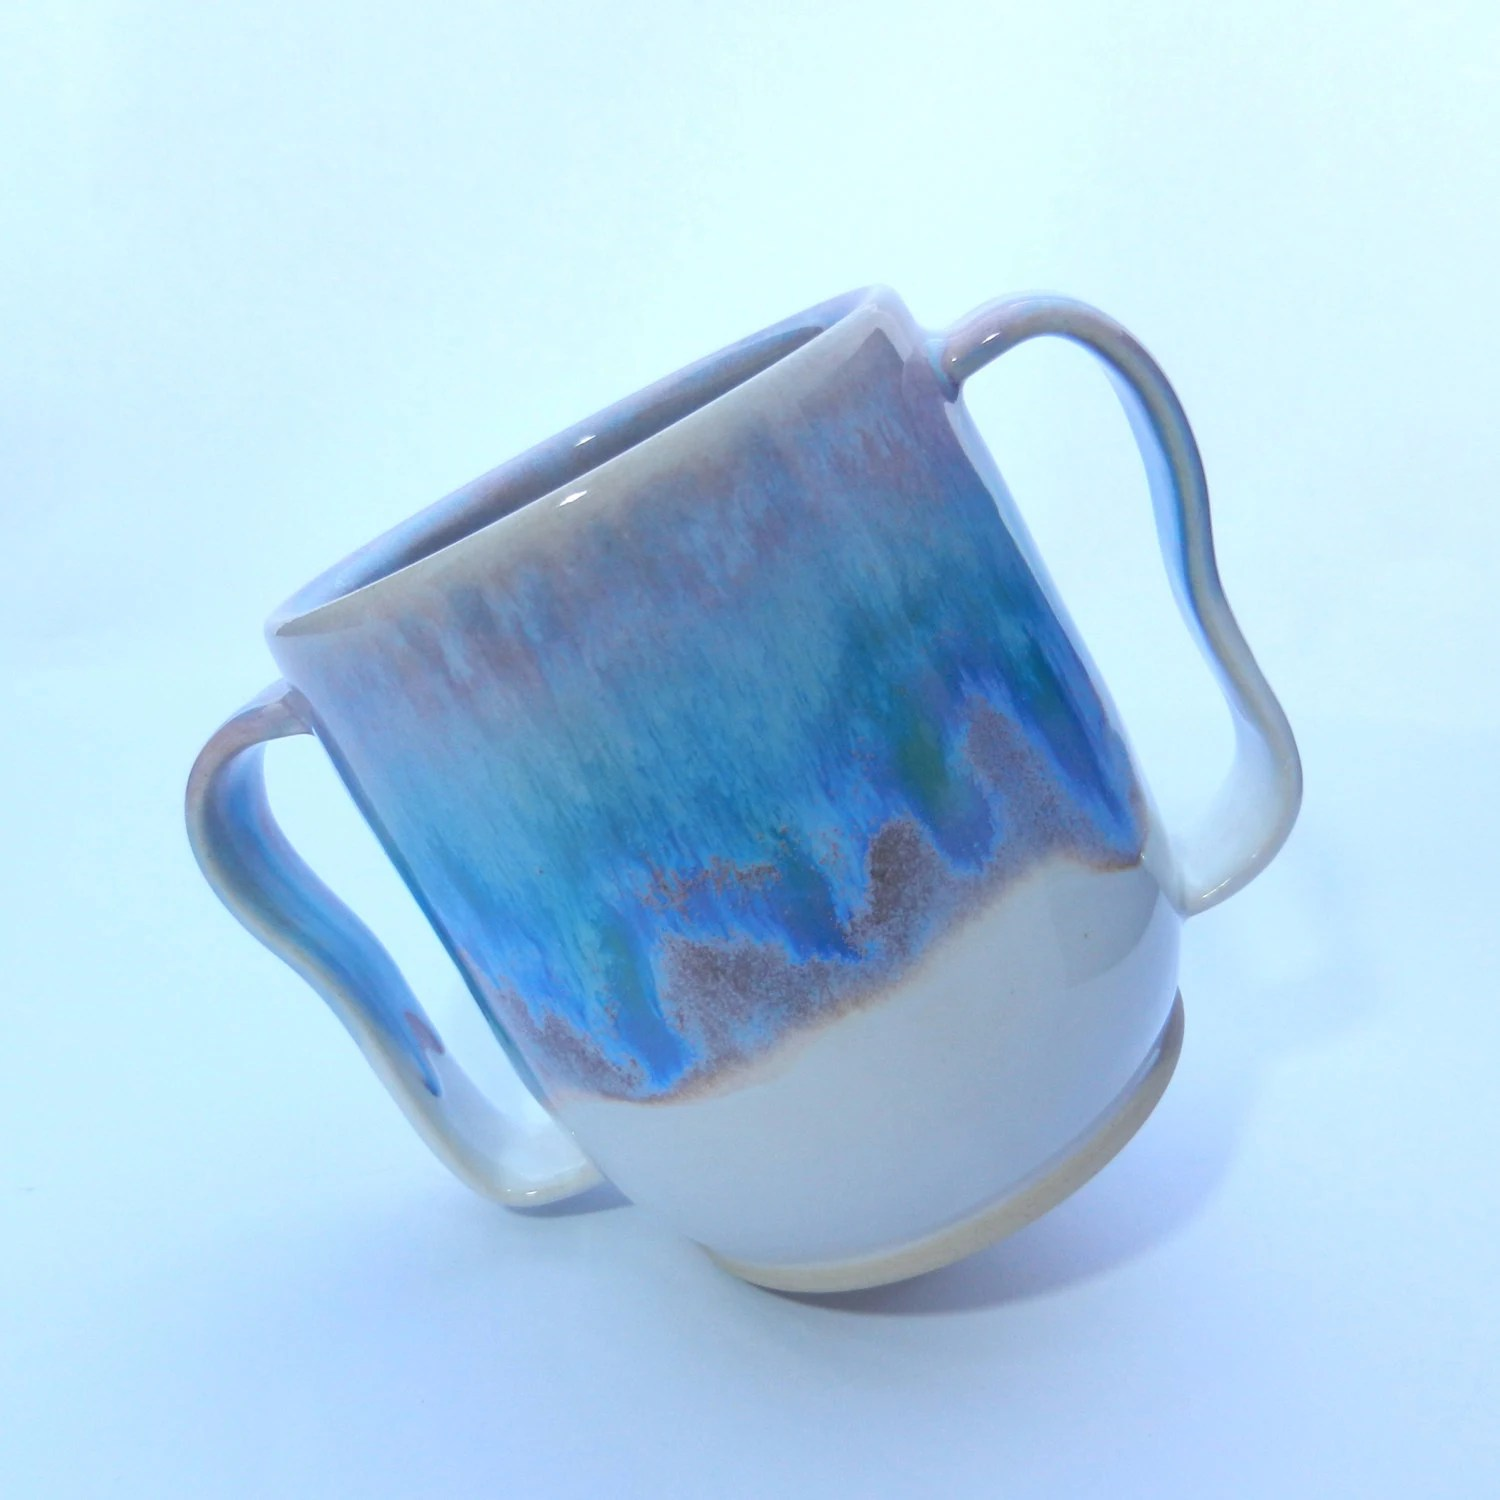 Double Handled Coffee Mugs Art Coffee Mug Two Handled Blue White Beer Pint Mug By Zozpots